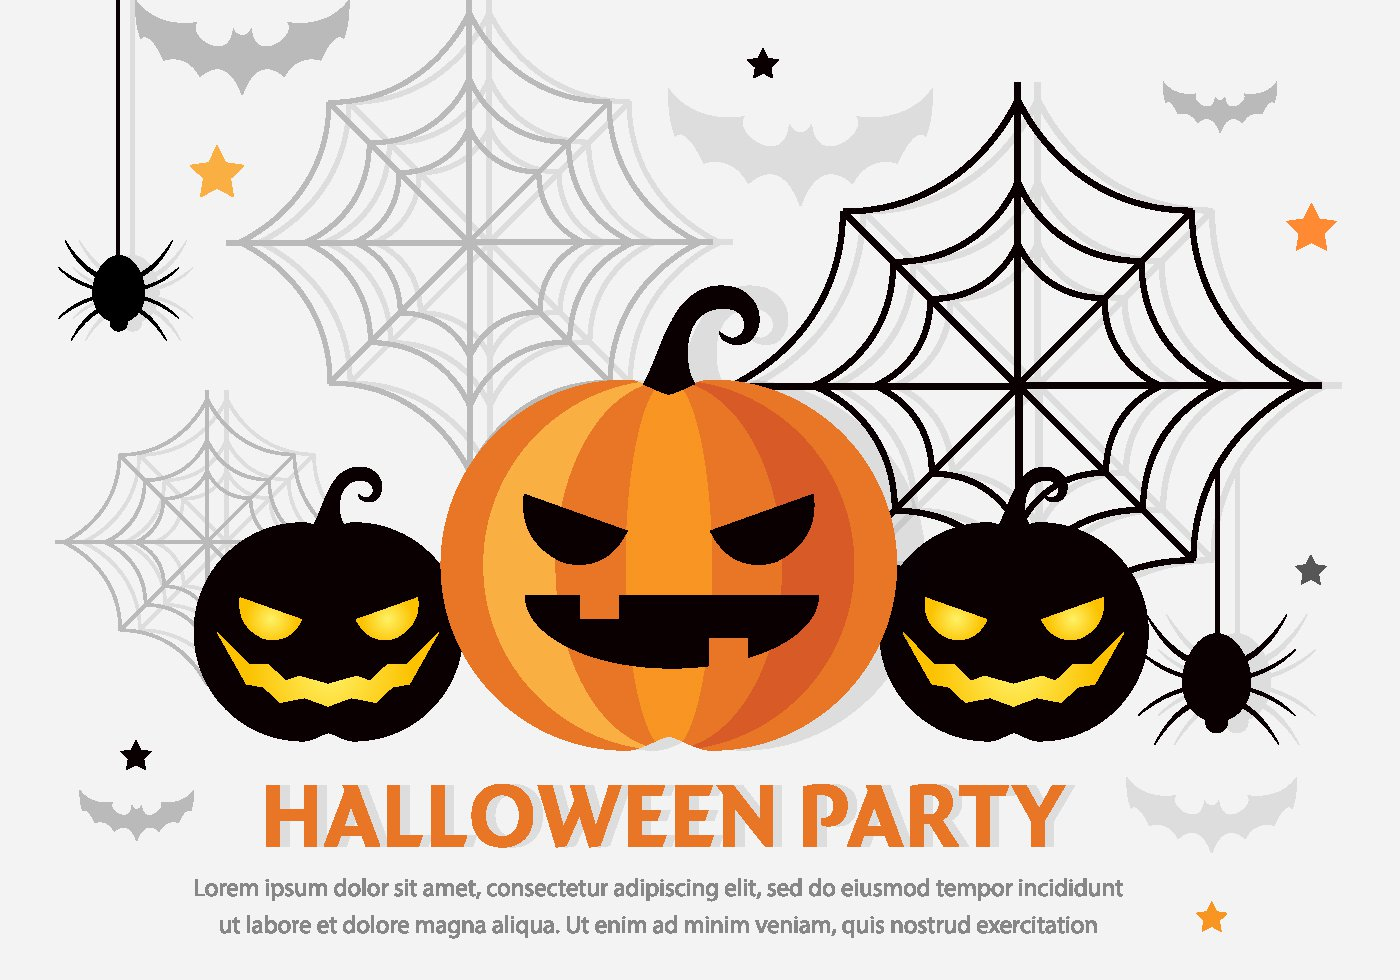 Halloween psd pumpkinheads free photoshop brushes at brusheezy for Halloween psd